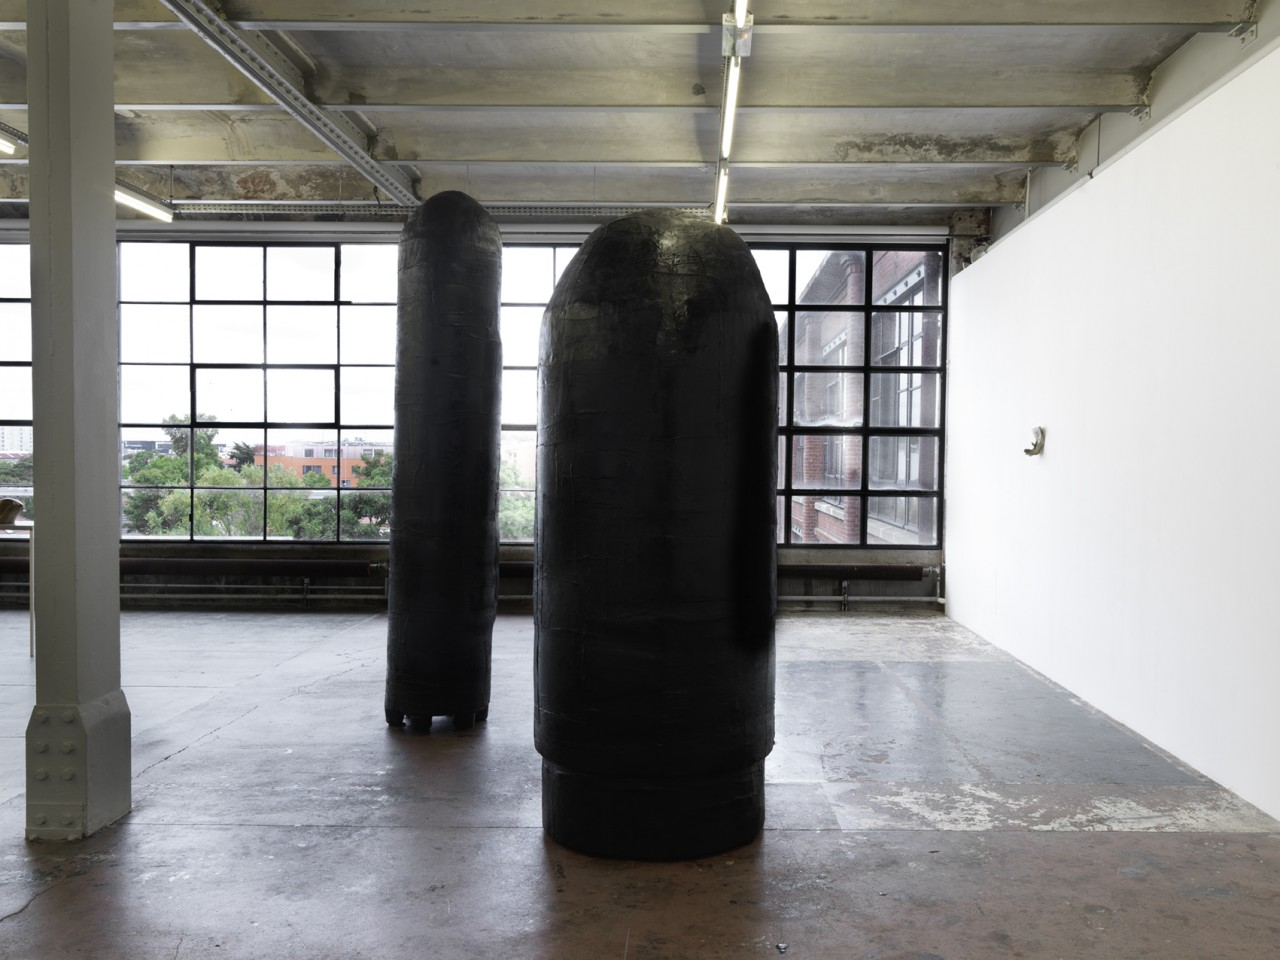 ALEXANDRA BIRCKEN STRETCH, Centre de l'art contemporain d'Ivry, le Crédac, France, 07.09. – 17.12.2017